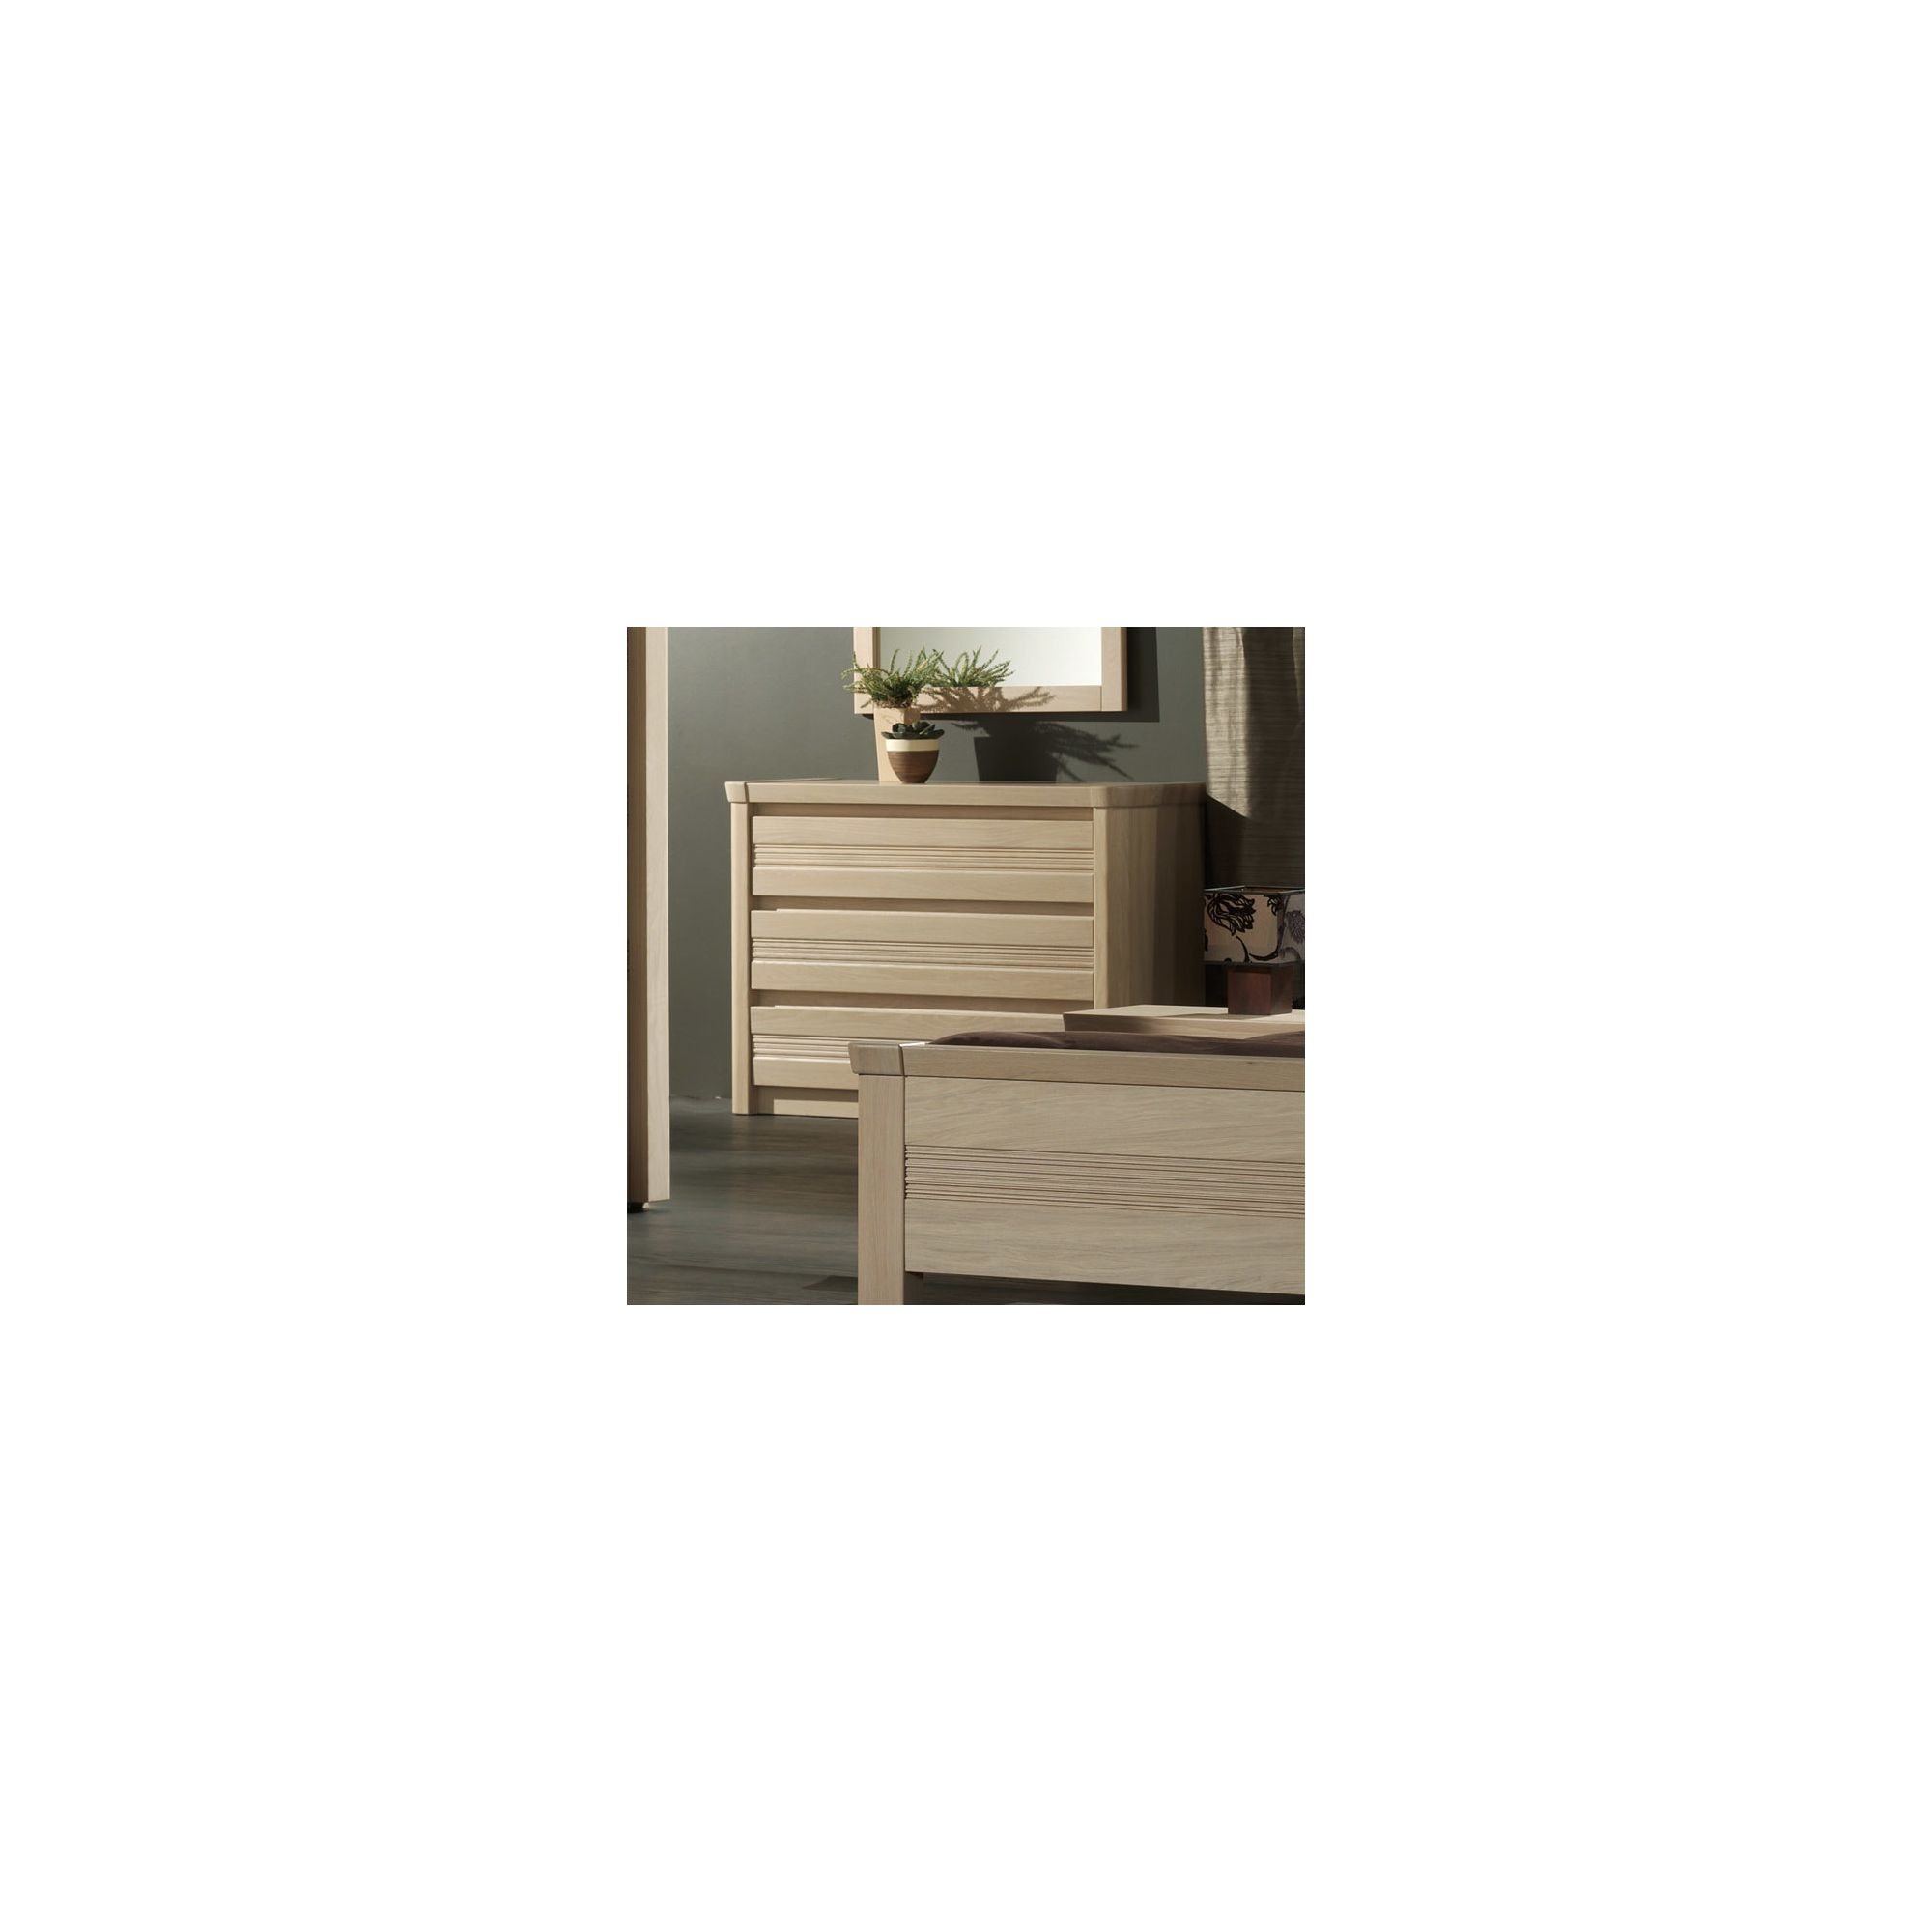 Sleepline Mundo 3 Drawers Chest - Mat Lacquered at Tescos Direct